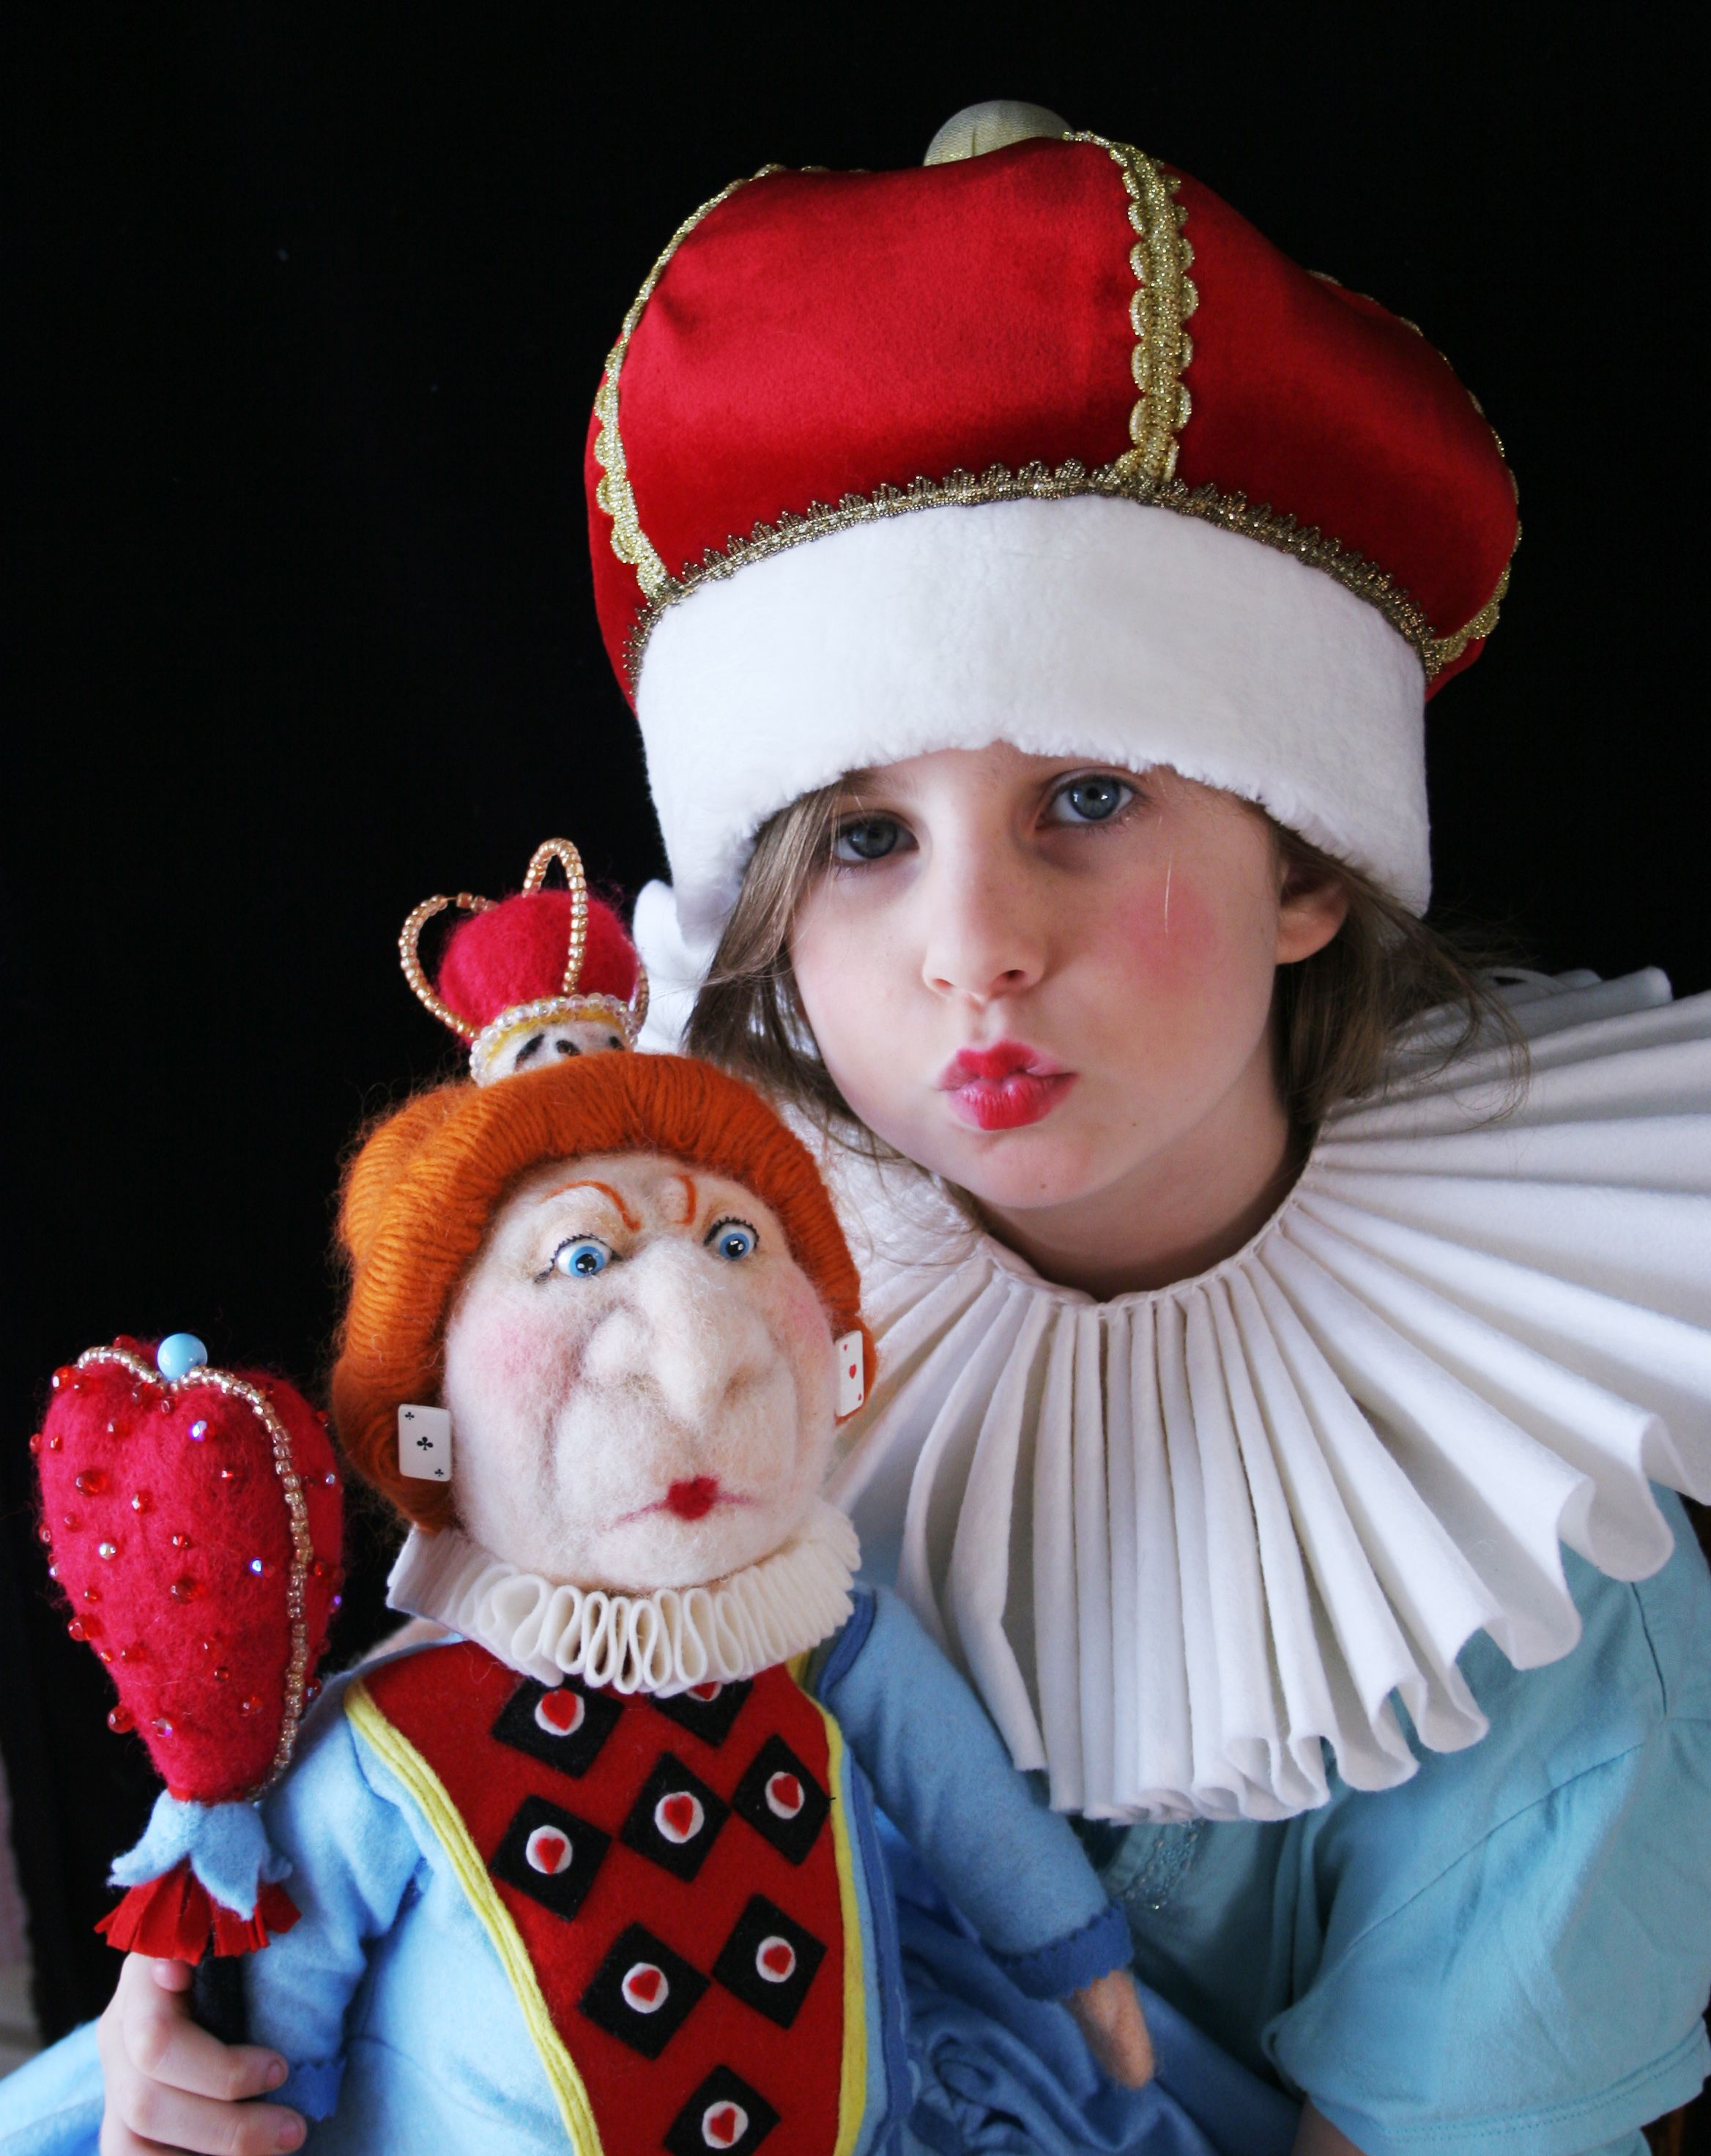 Emili and the needle felted Queen of Hearts by Laura Lee Burch